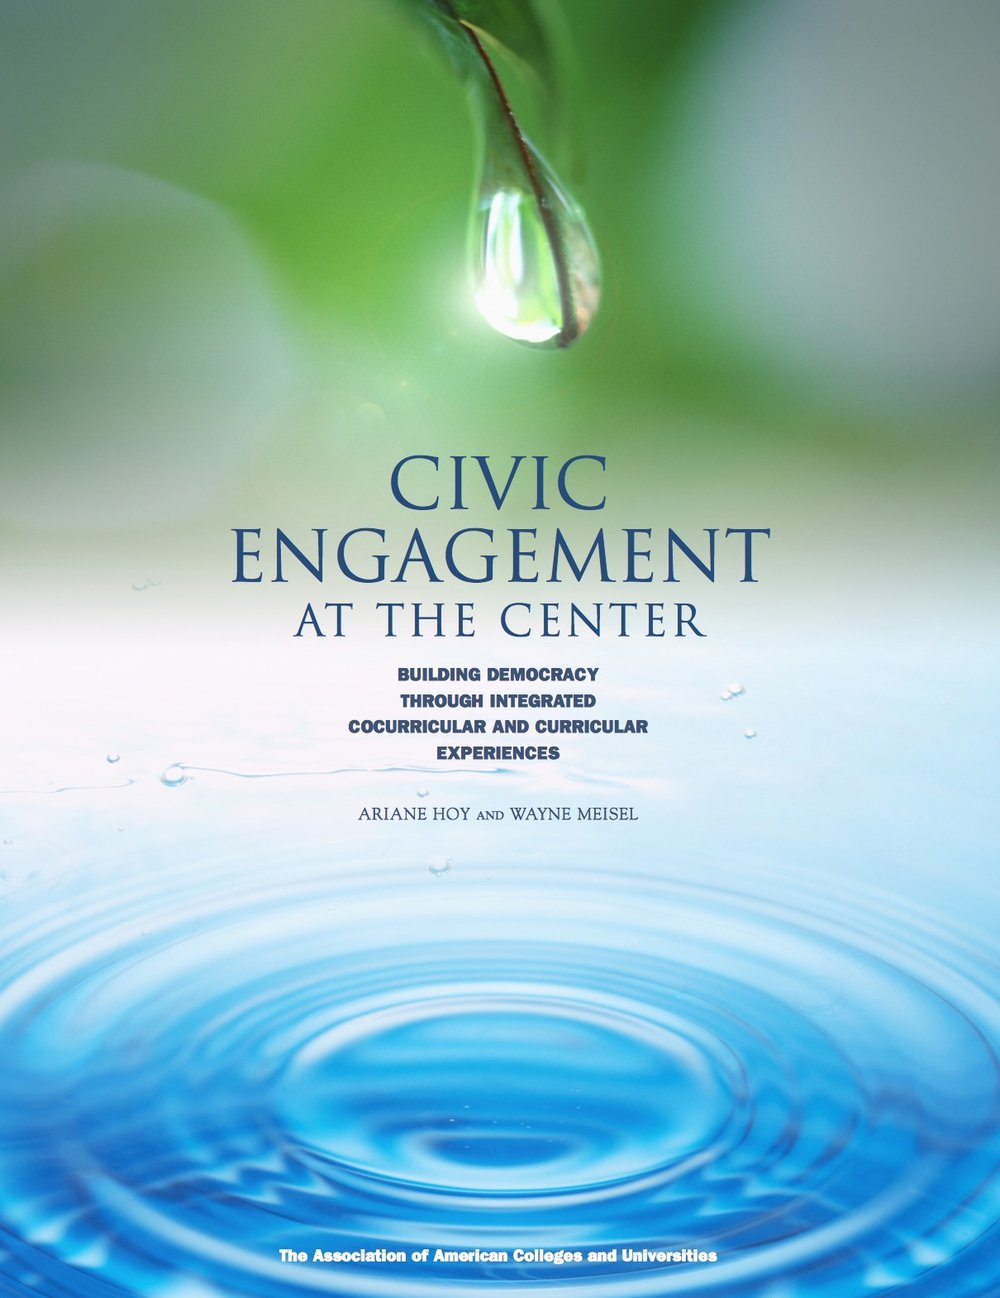 Civic Engagement at the Center: Building Democracy through Integrated Co-curricular and Curricular Experiences